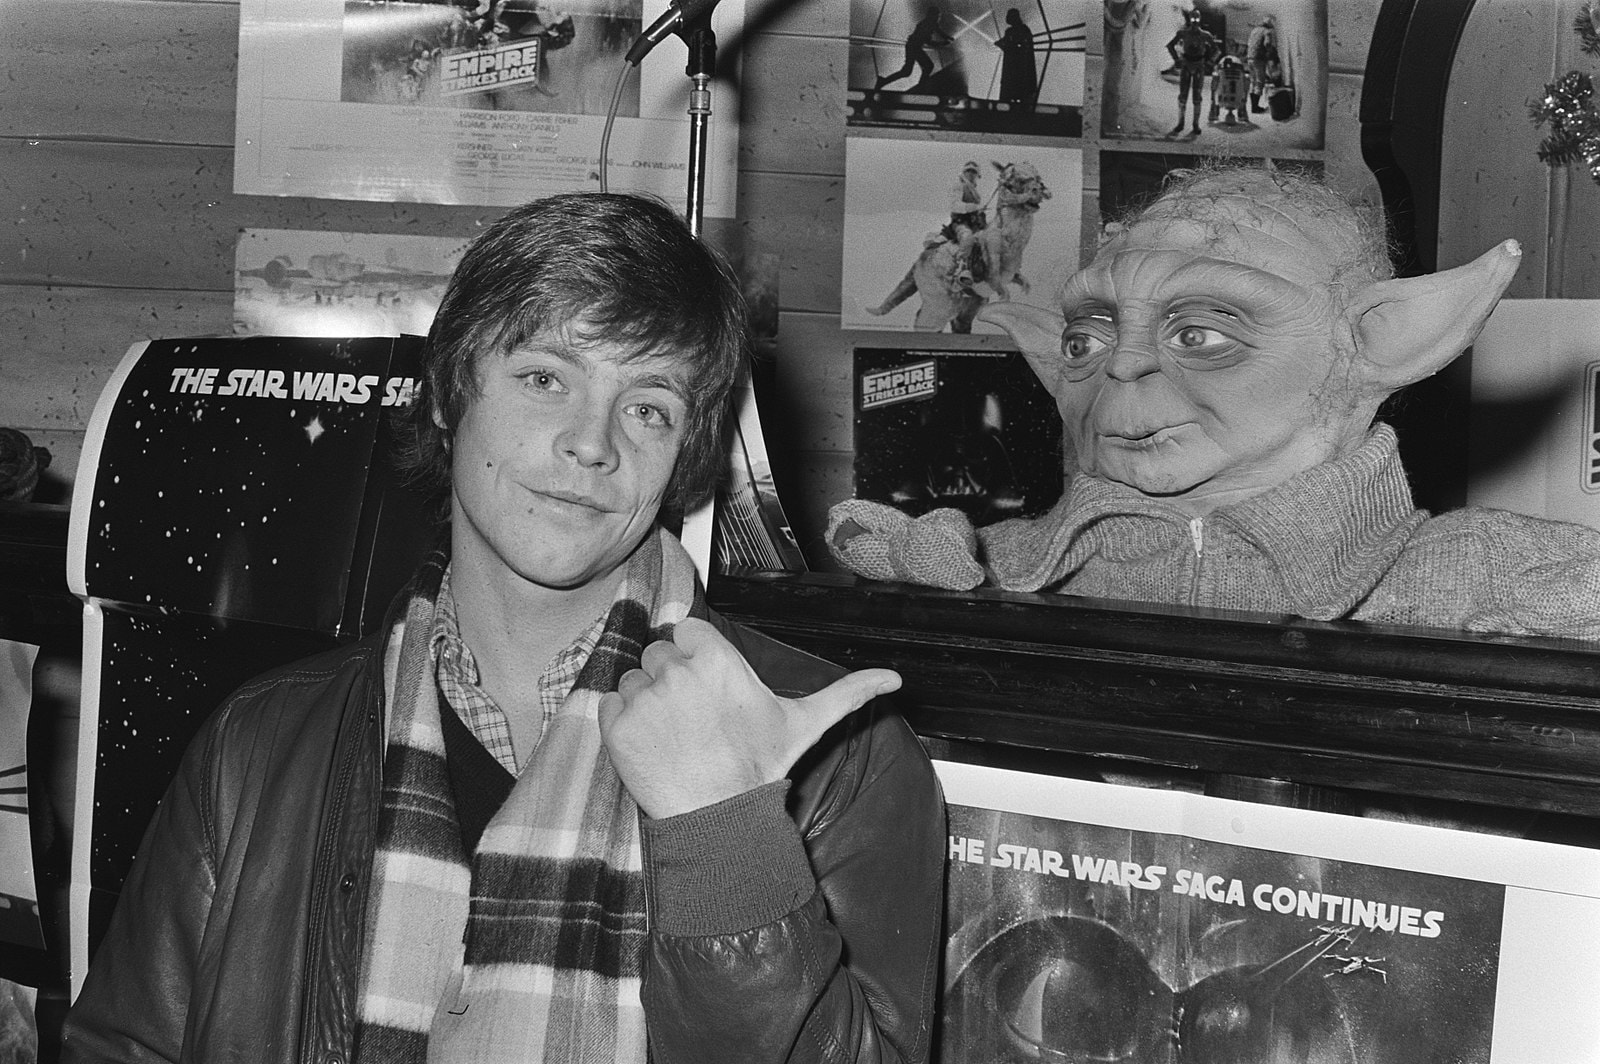 Mark Hamill, who plays Luke Skywalker, at a press conference in 1980. Photo courtesy of Dutch National archives.